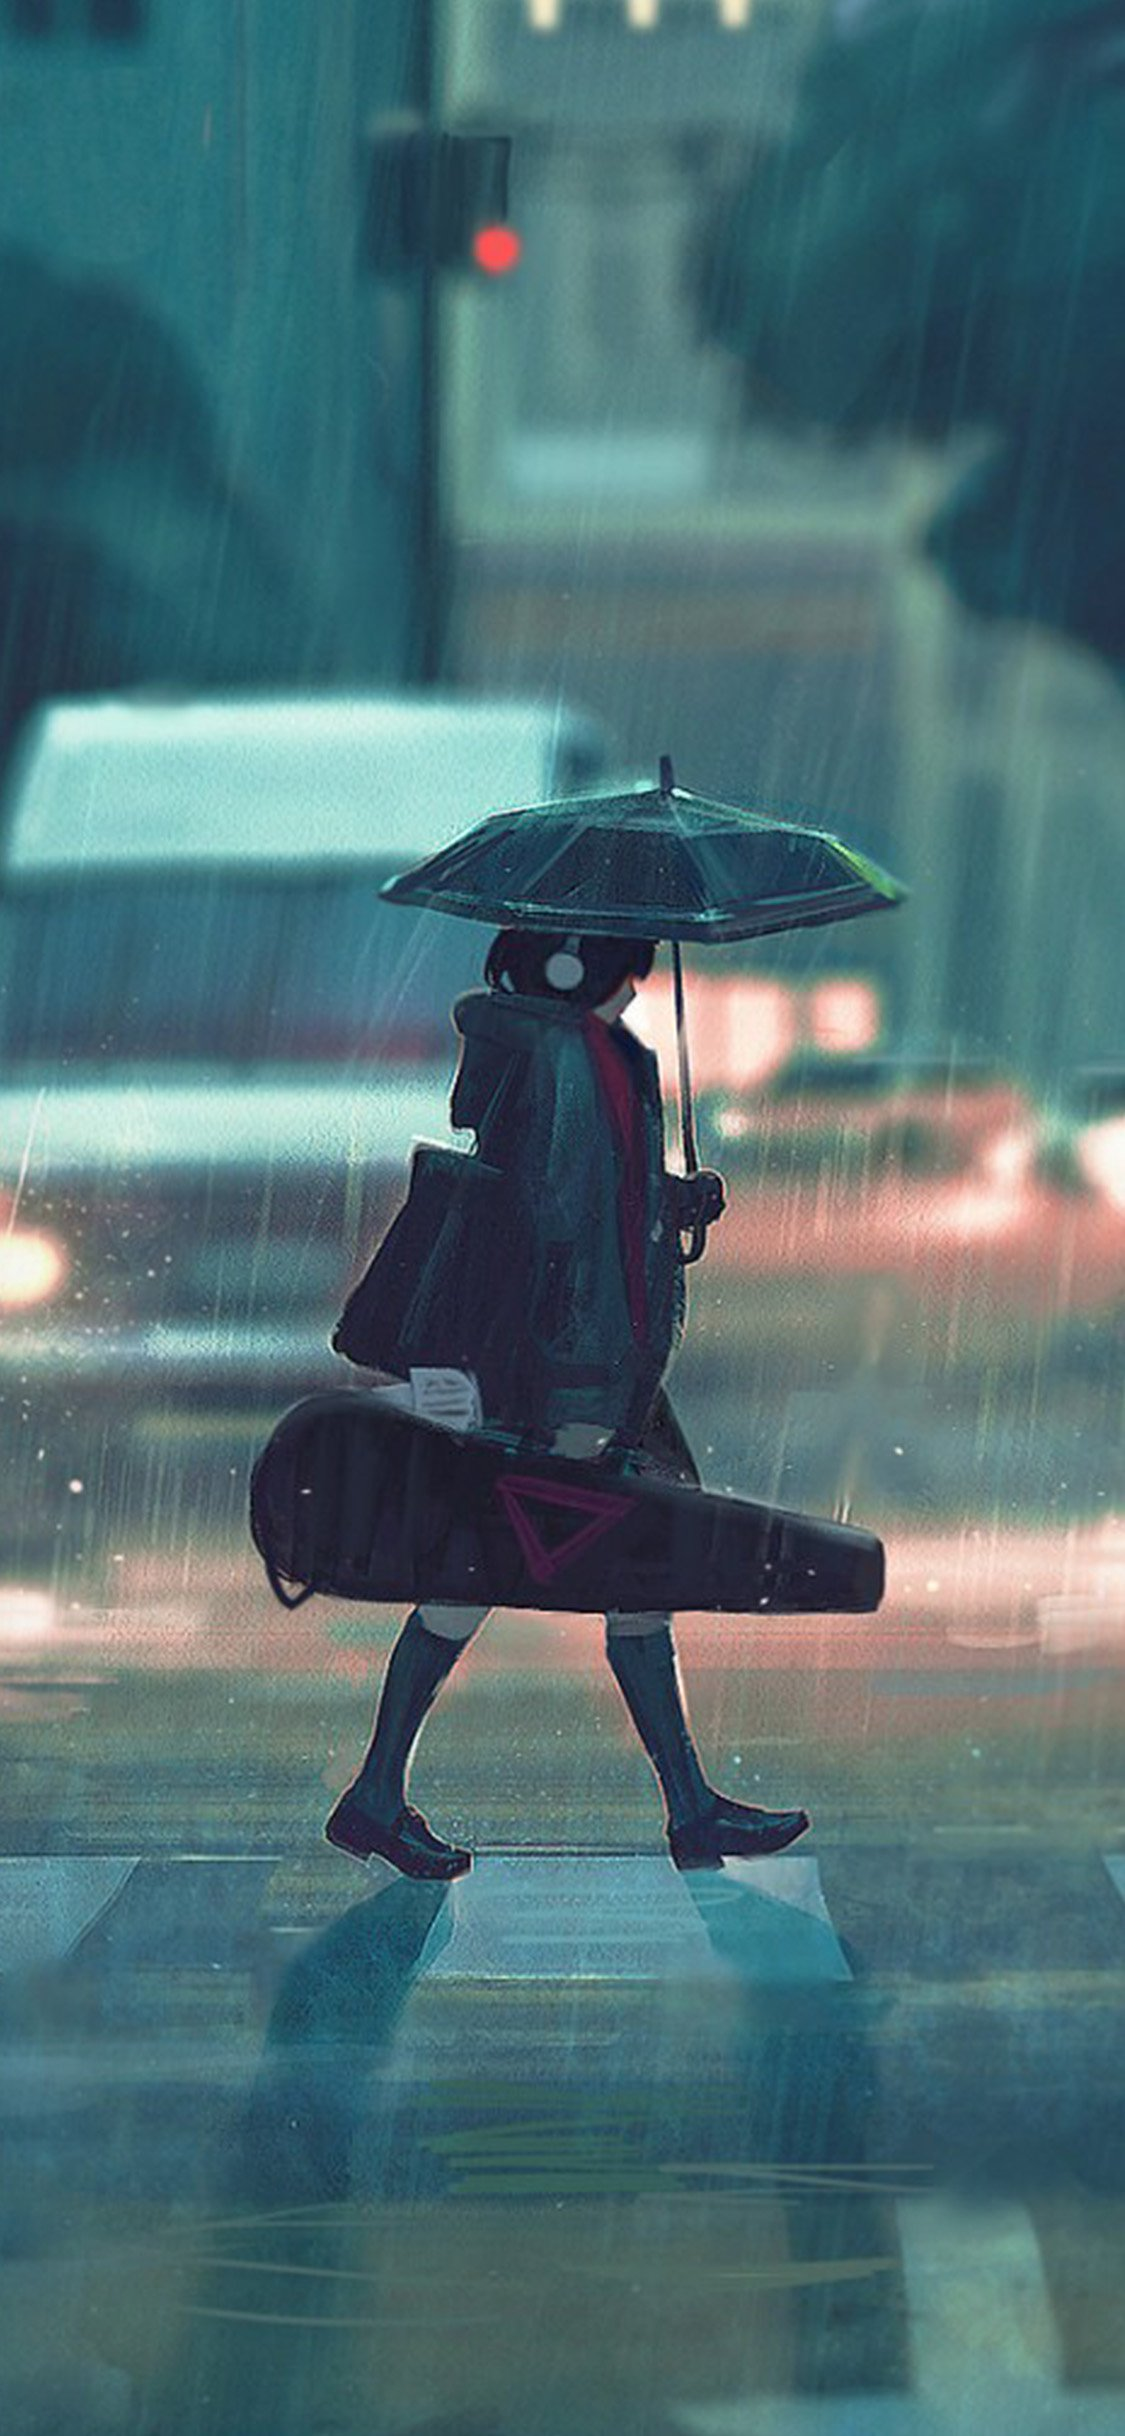 Rainy Day Anime Paint Girl Iphone Wallpapers Free Download